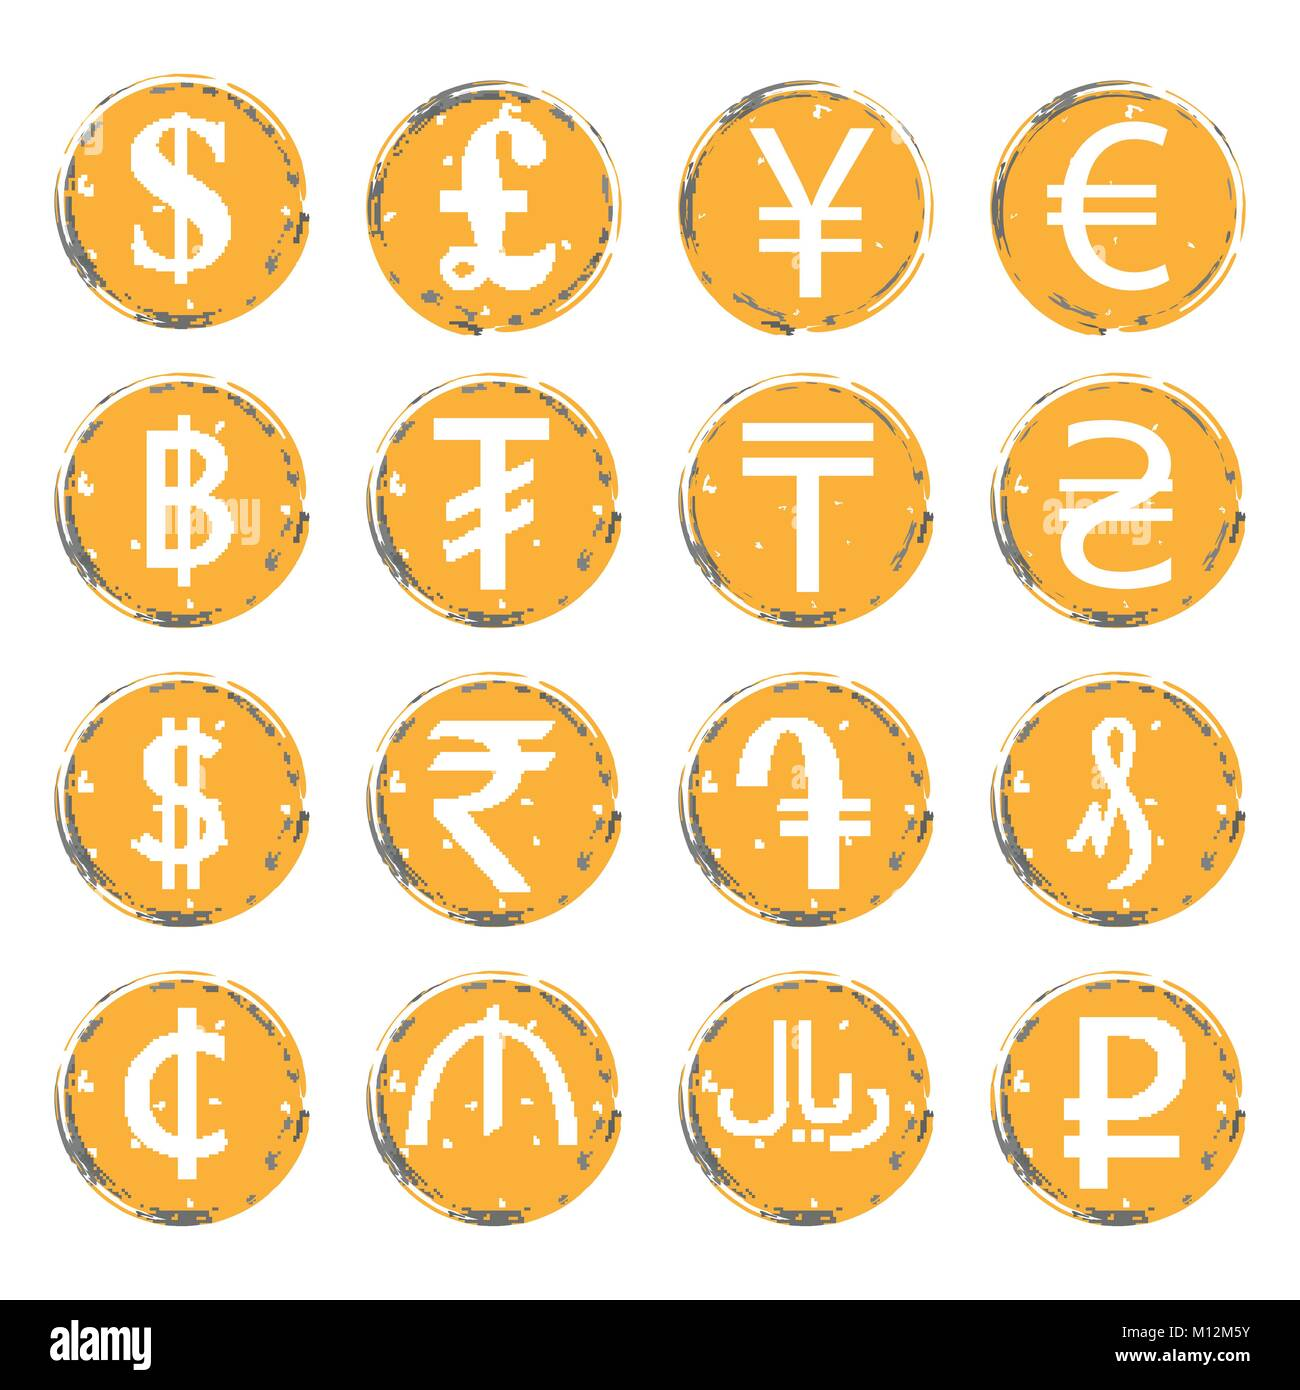 The currency of azerbaijan stock photos the currency of sixteen yellow gray vector grunge icons with white images of modern currency symbols of various biocorpaavc